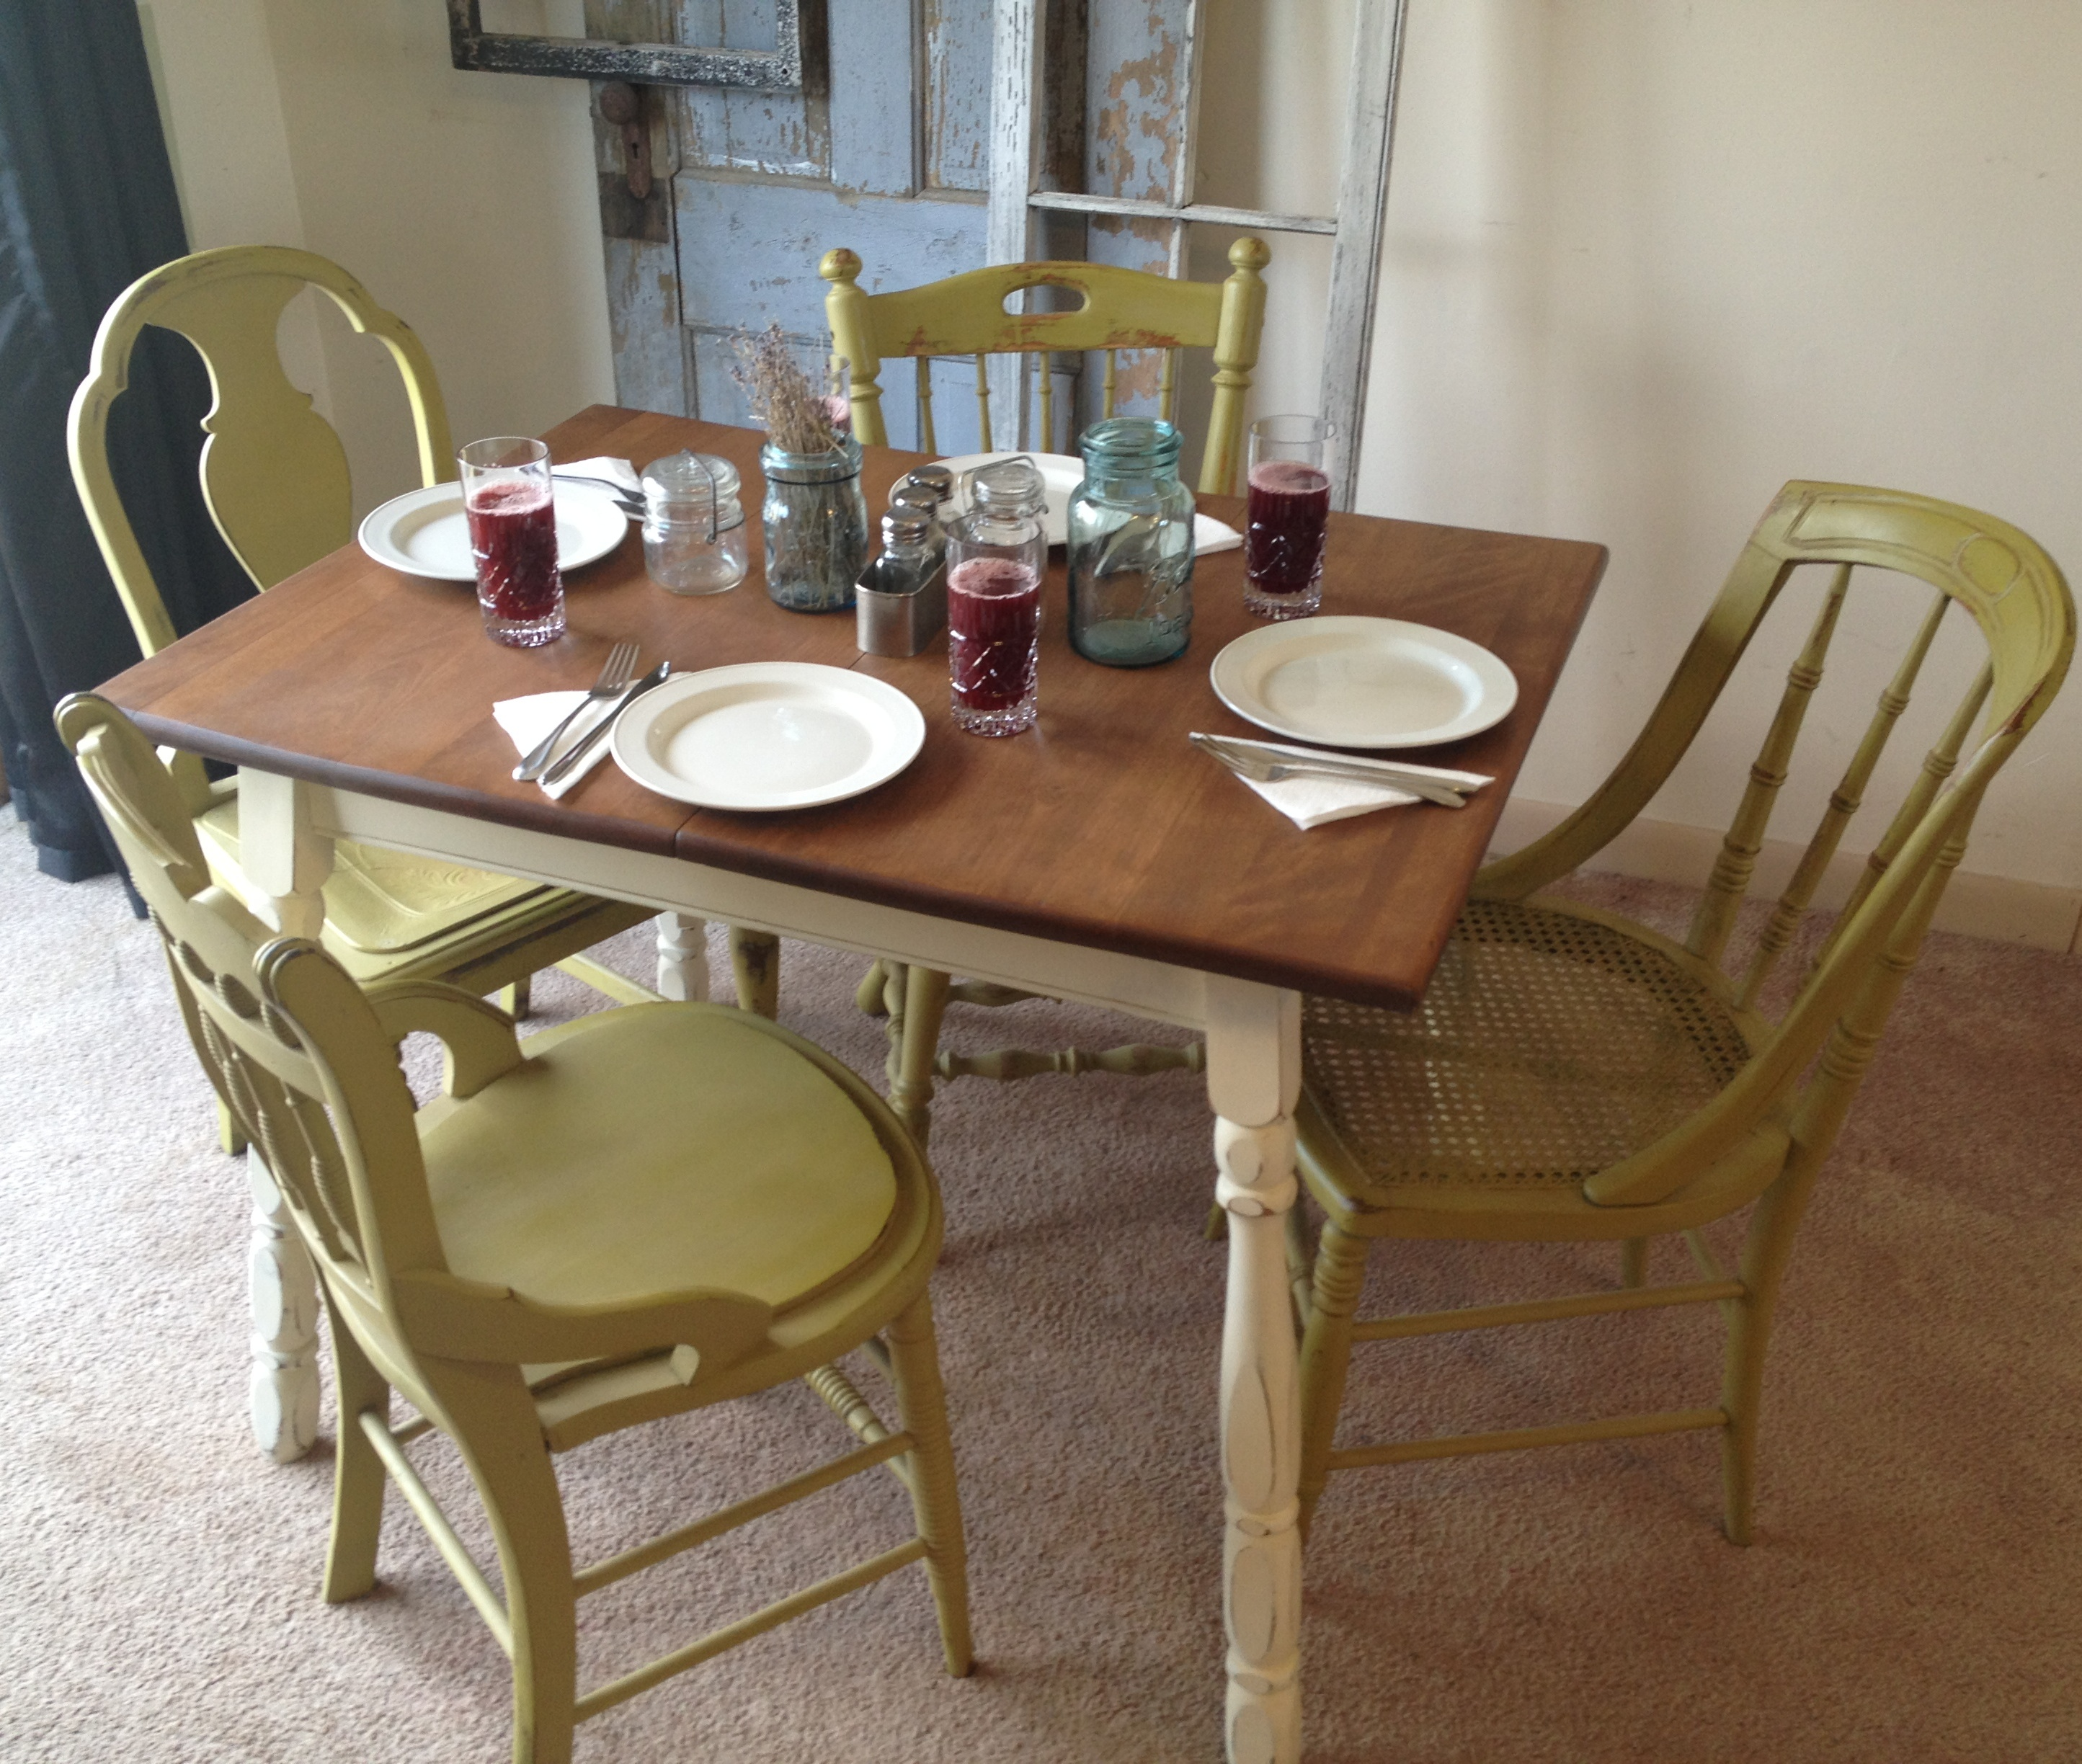 Kitchen table with 4 chairs photo - 1